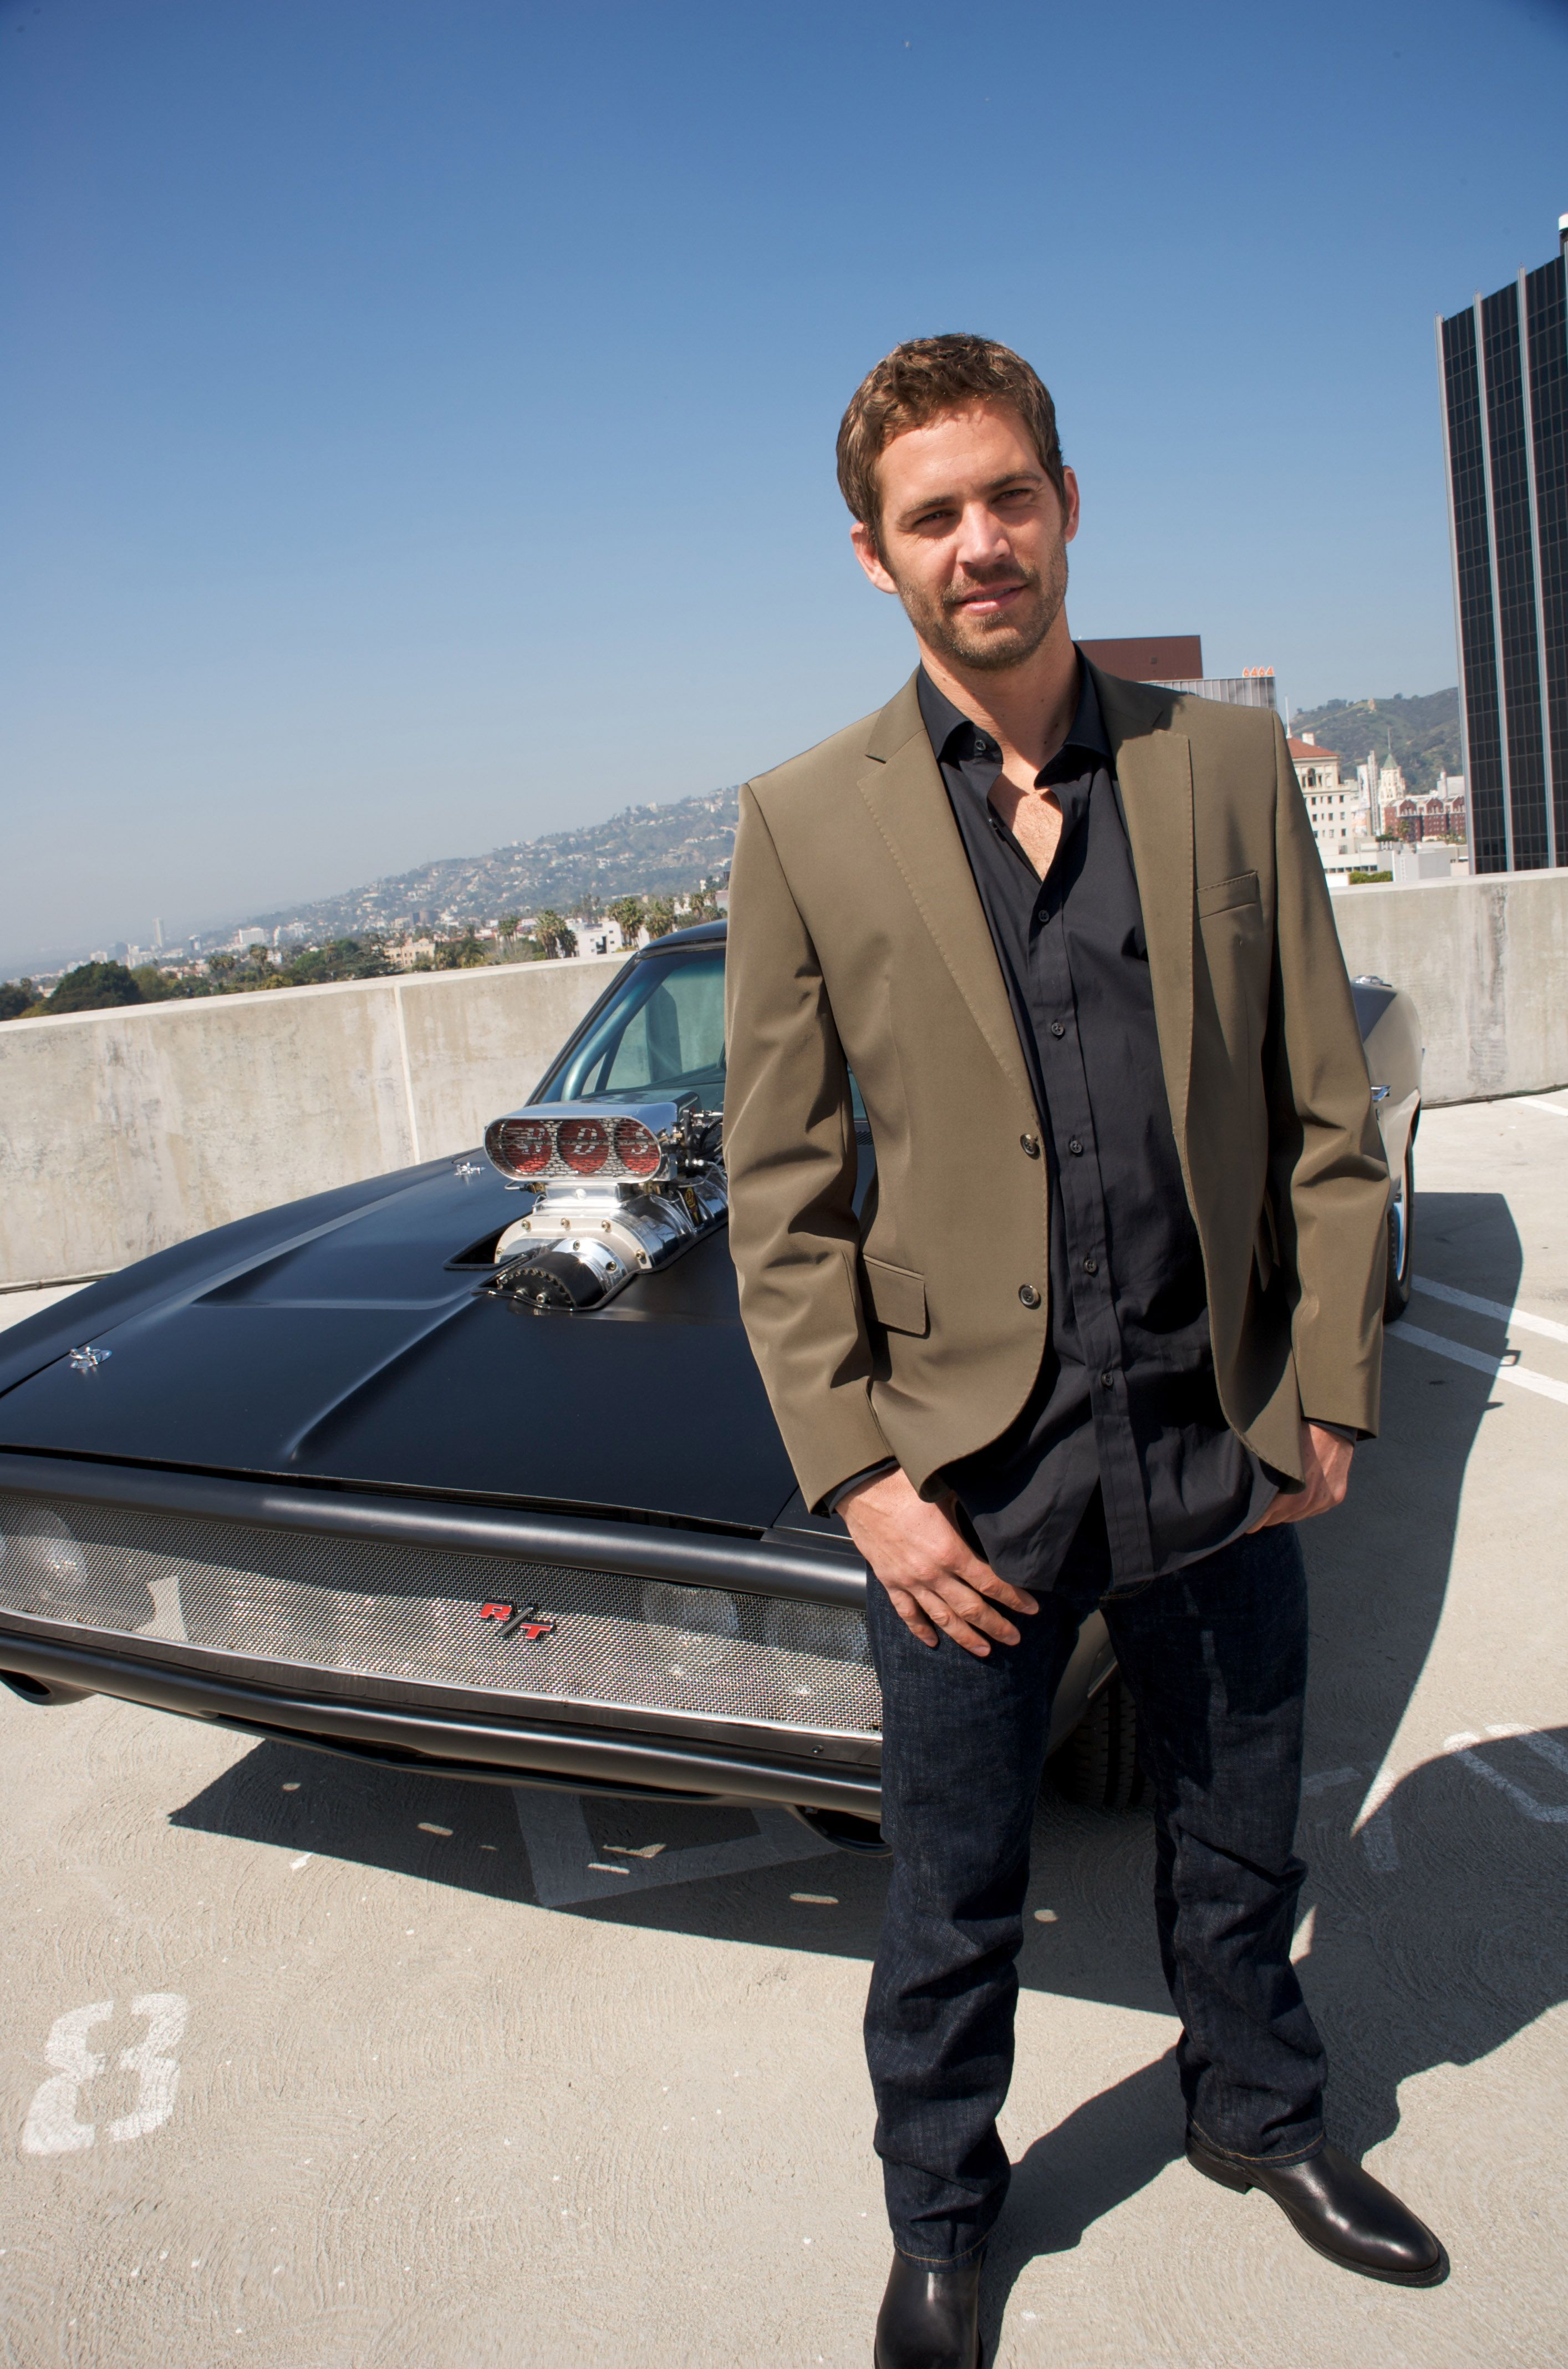 """Paul Walker at the """"Fast & Furious"""" press conference on March 13, 2009, in Hollywood, California   Photo: Vera Anderson/WireImage/Getty Images"""